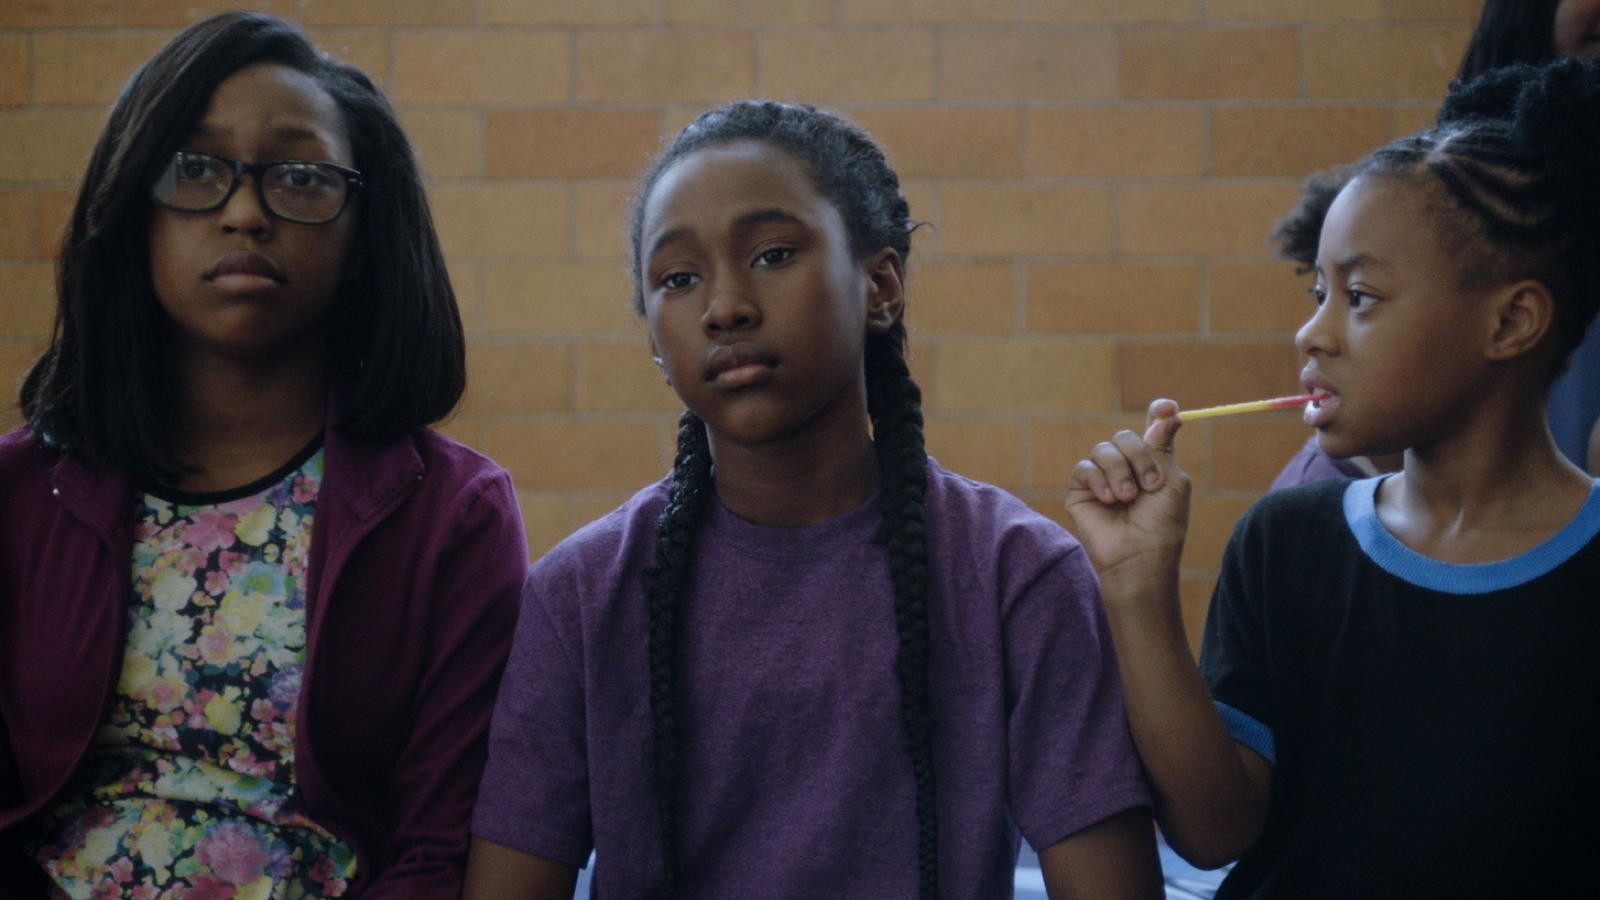 The Fits ,Anna Rose Holmer (2015)